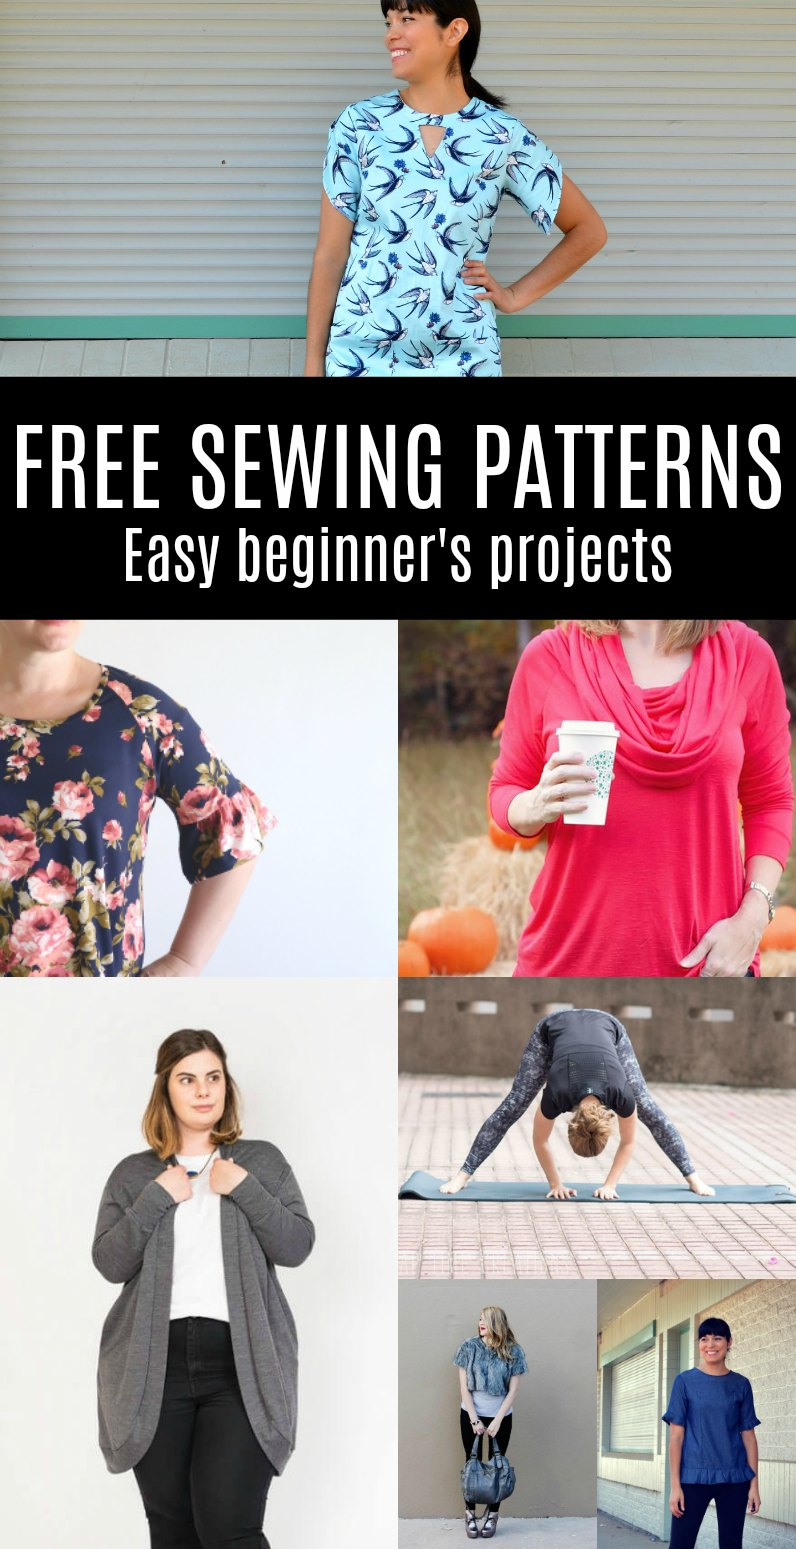 Free pattern alert 20 sewing patterns for beginners on the free pattern alert 20 sewing patterns for beginners on the cutting floor printable pdf sewing patterns and tutorials for women jeuxipadfo Gallery